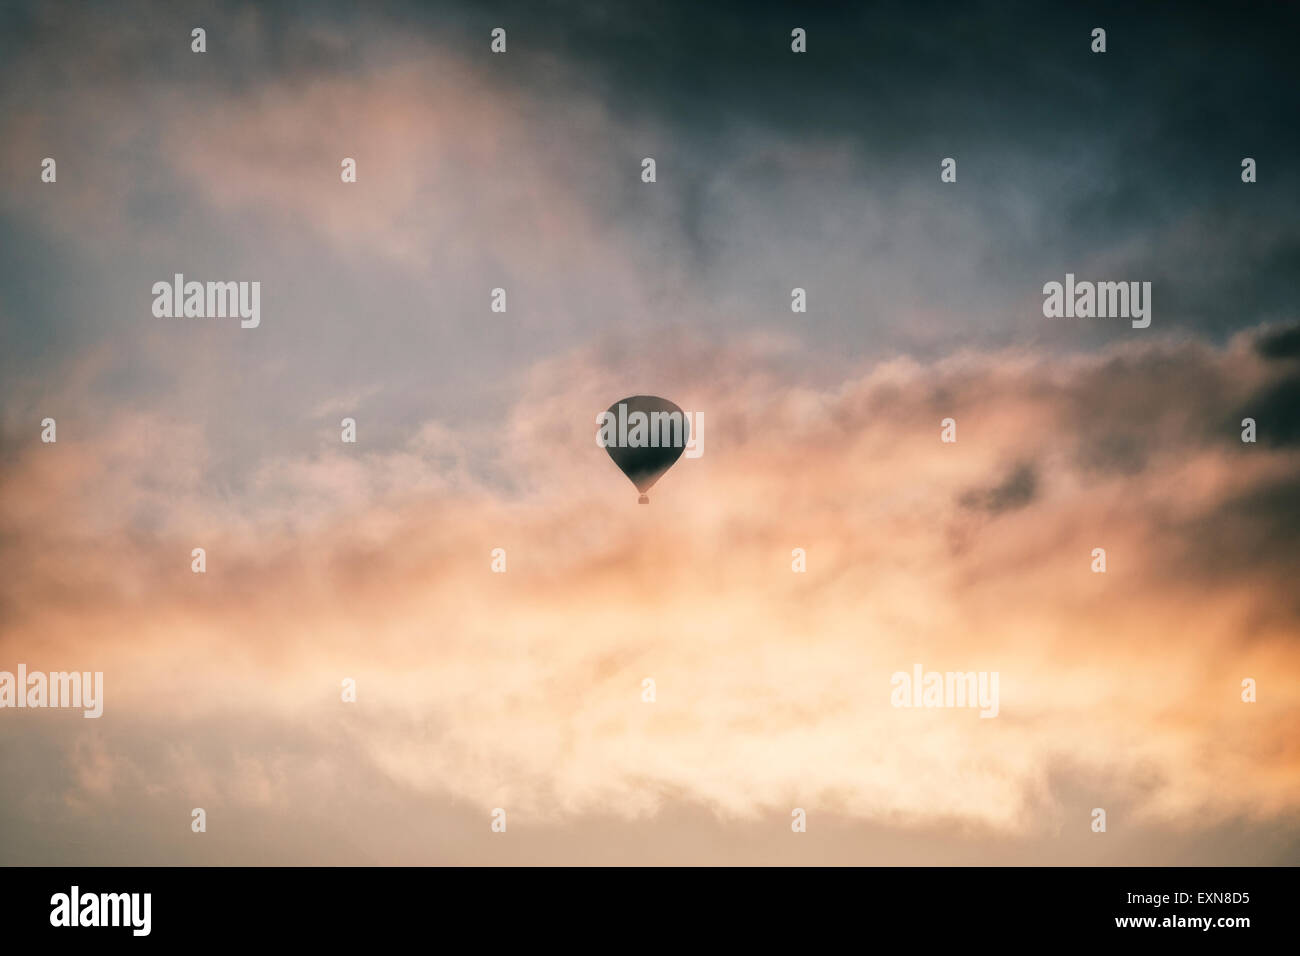 a hot air balloon in the sunrise - Stock Image